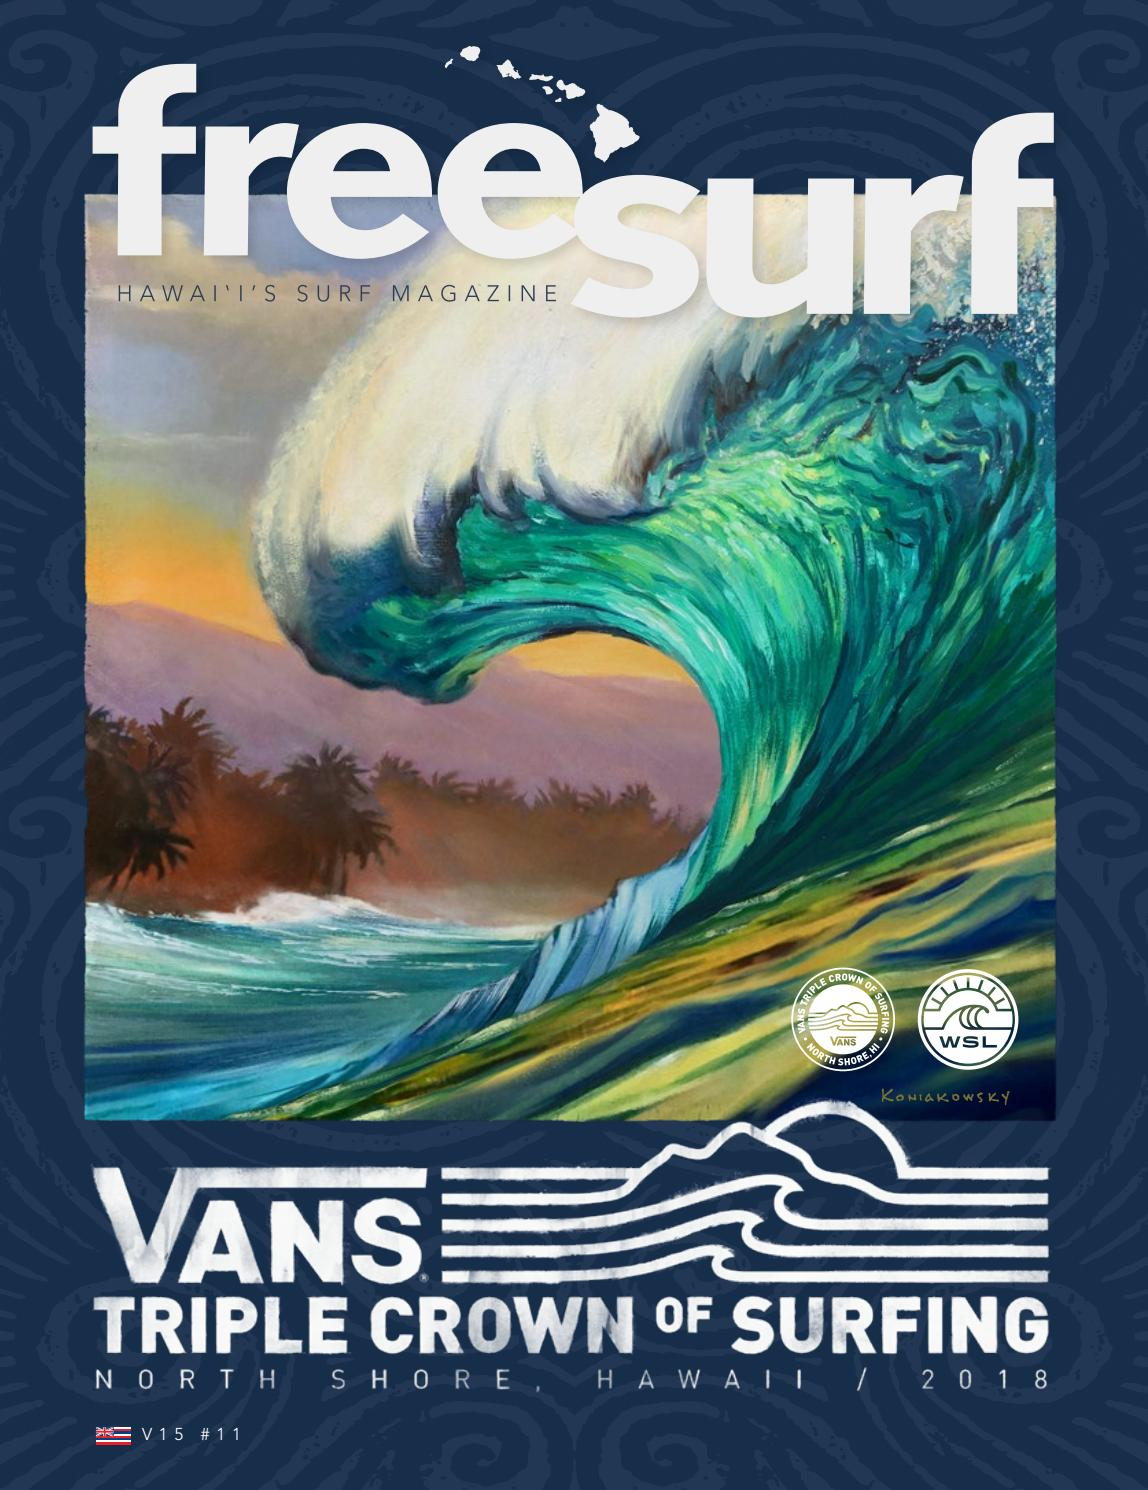 36 x 24 Brand Promo Advertising Print Wall Poster 1 HURLEY SURF Poster